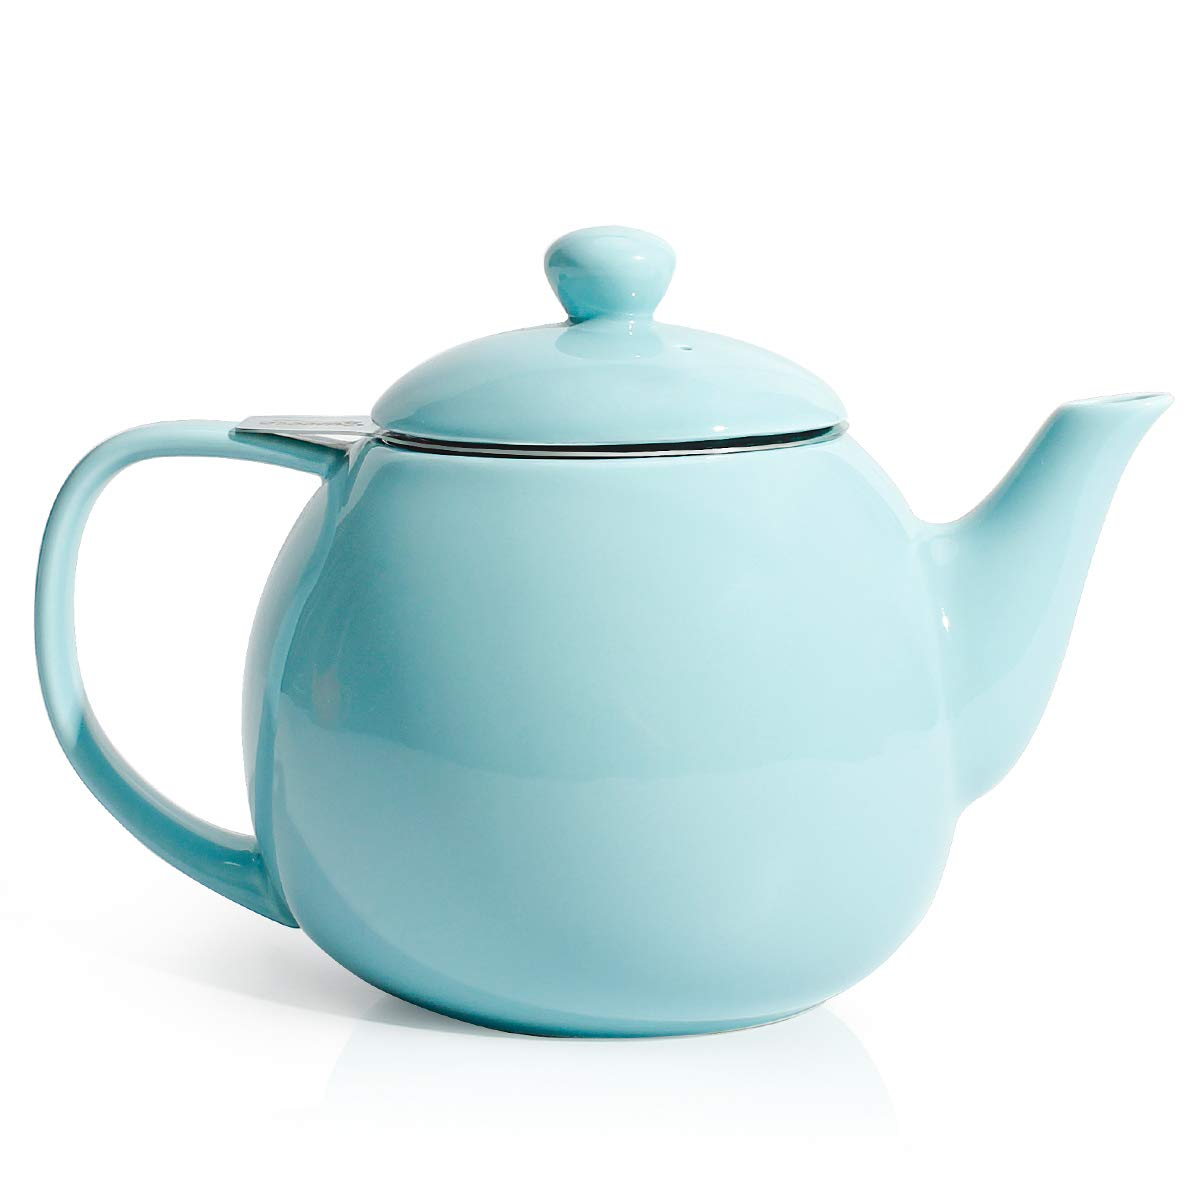 Sweese 221.102 Teapot, Porcelain Tea Pot with Stainless Steel Infuser, Blooming & Loose Leaf Teapot - 27ounce, Turquoise